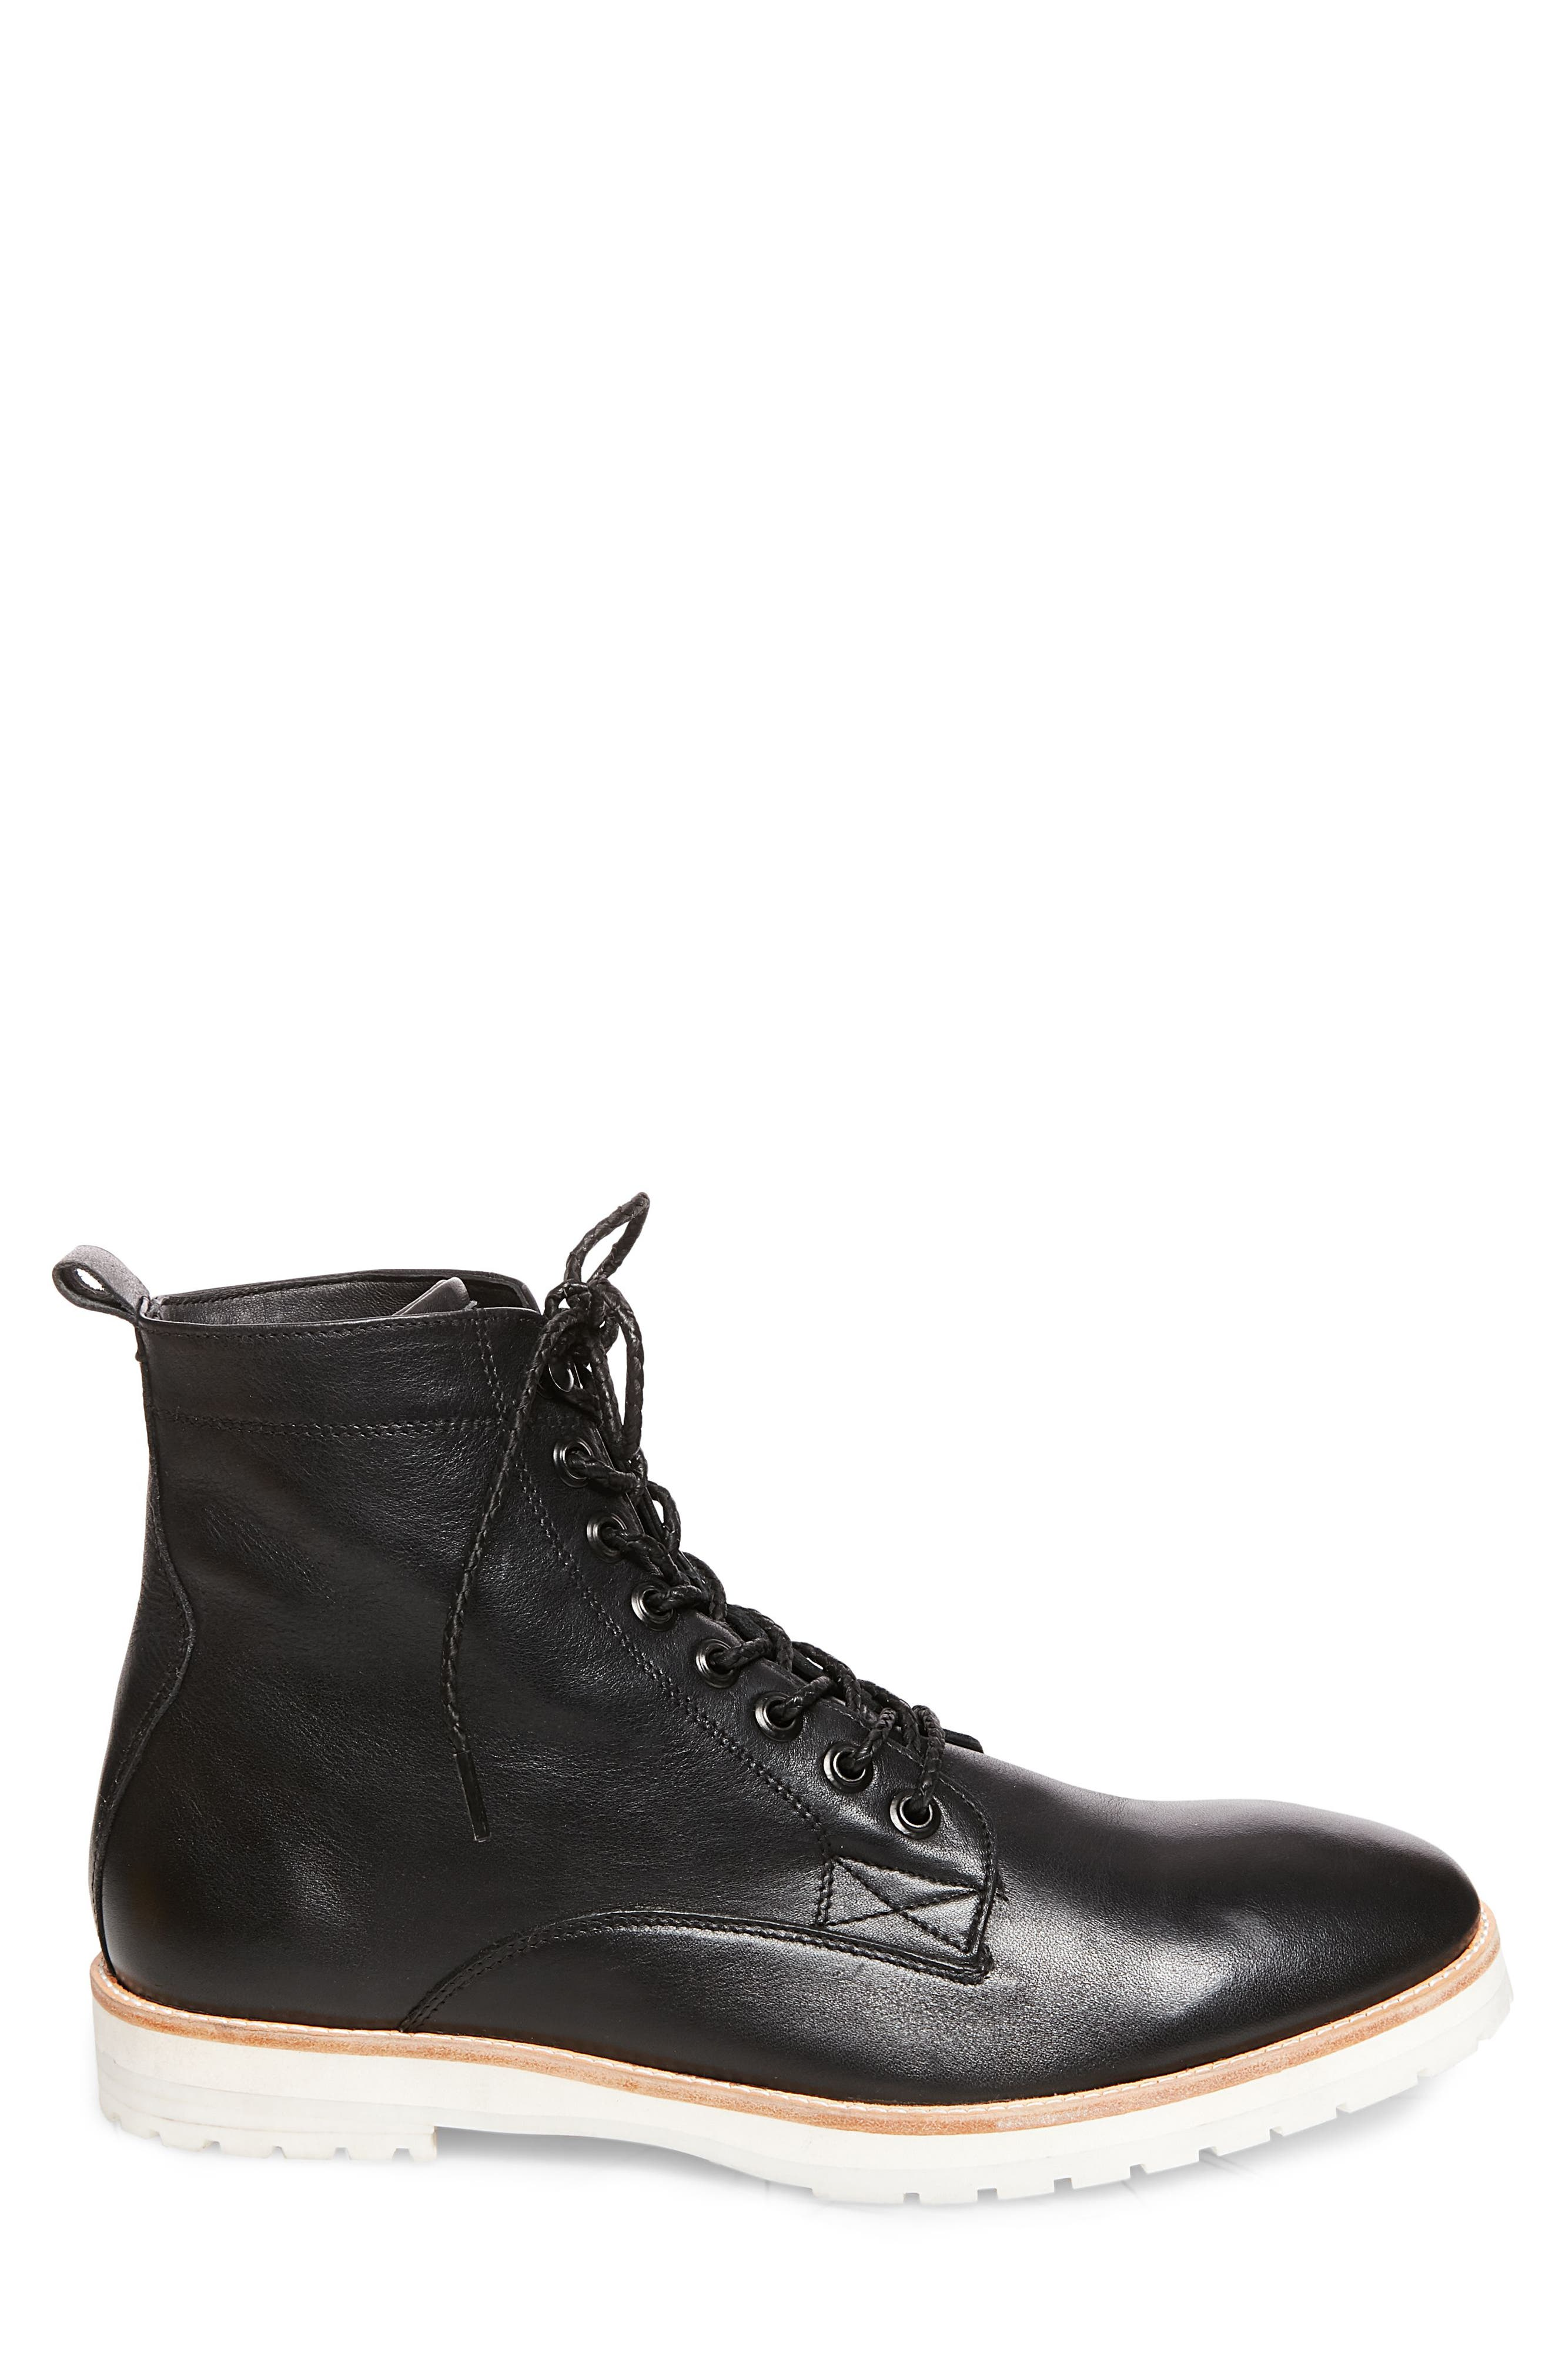 Alternate Image 3  - Steve Madden x GQ Andre Plain Toe Boot (Men)